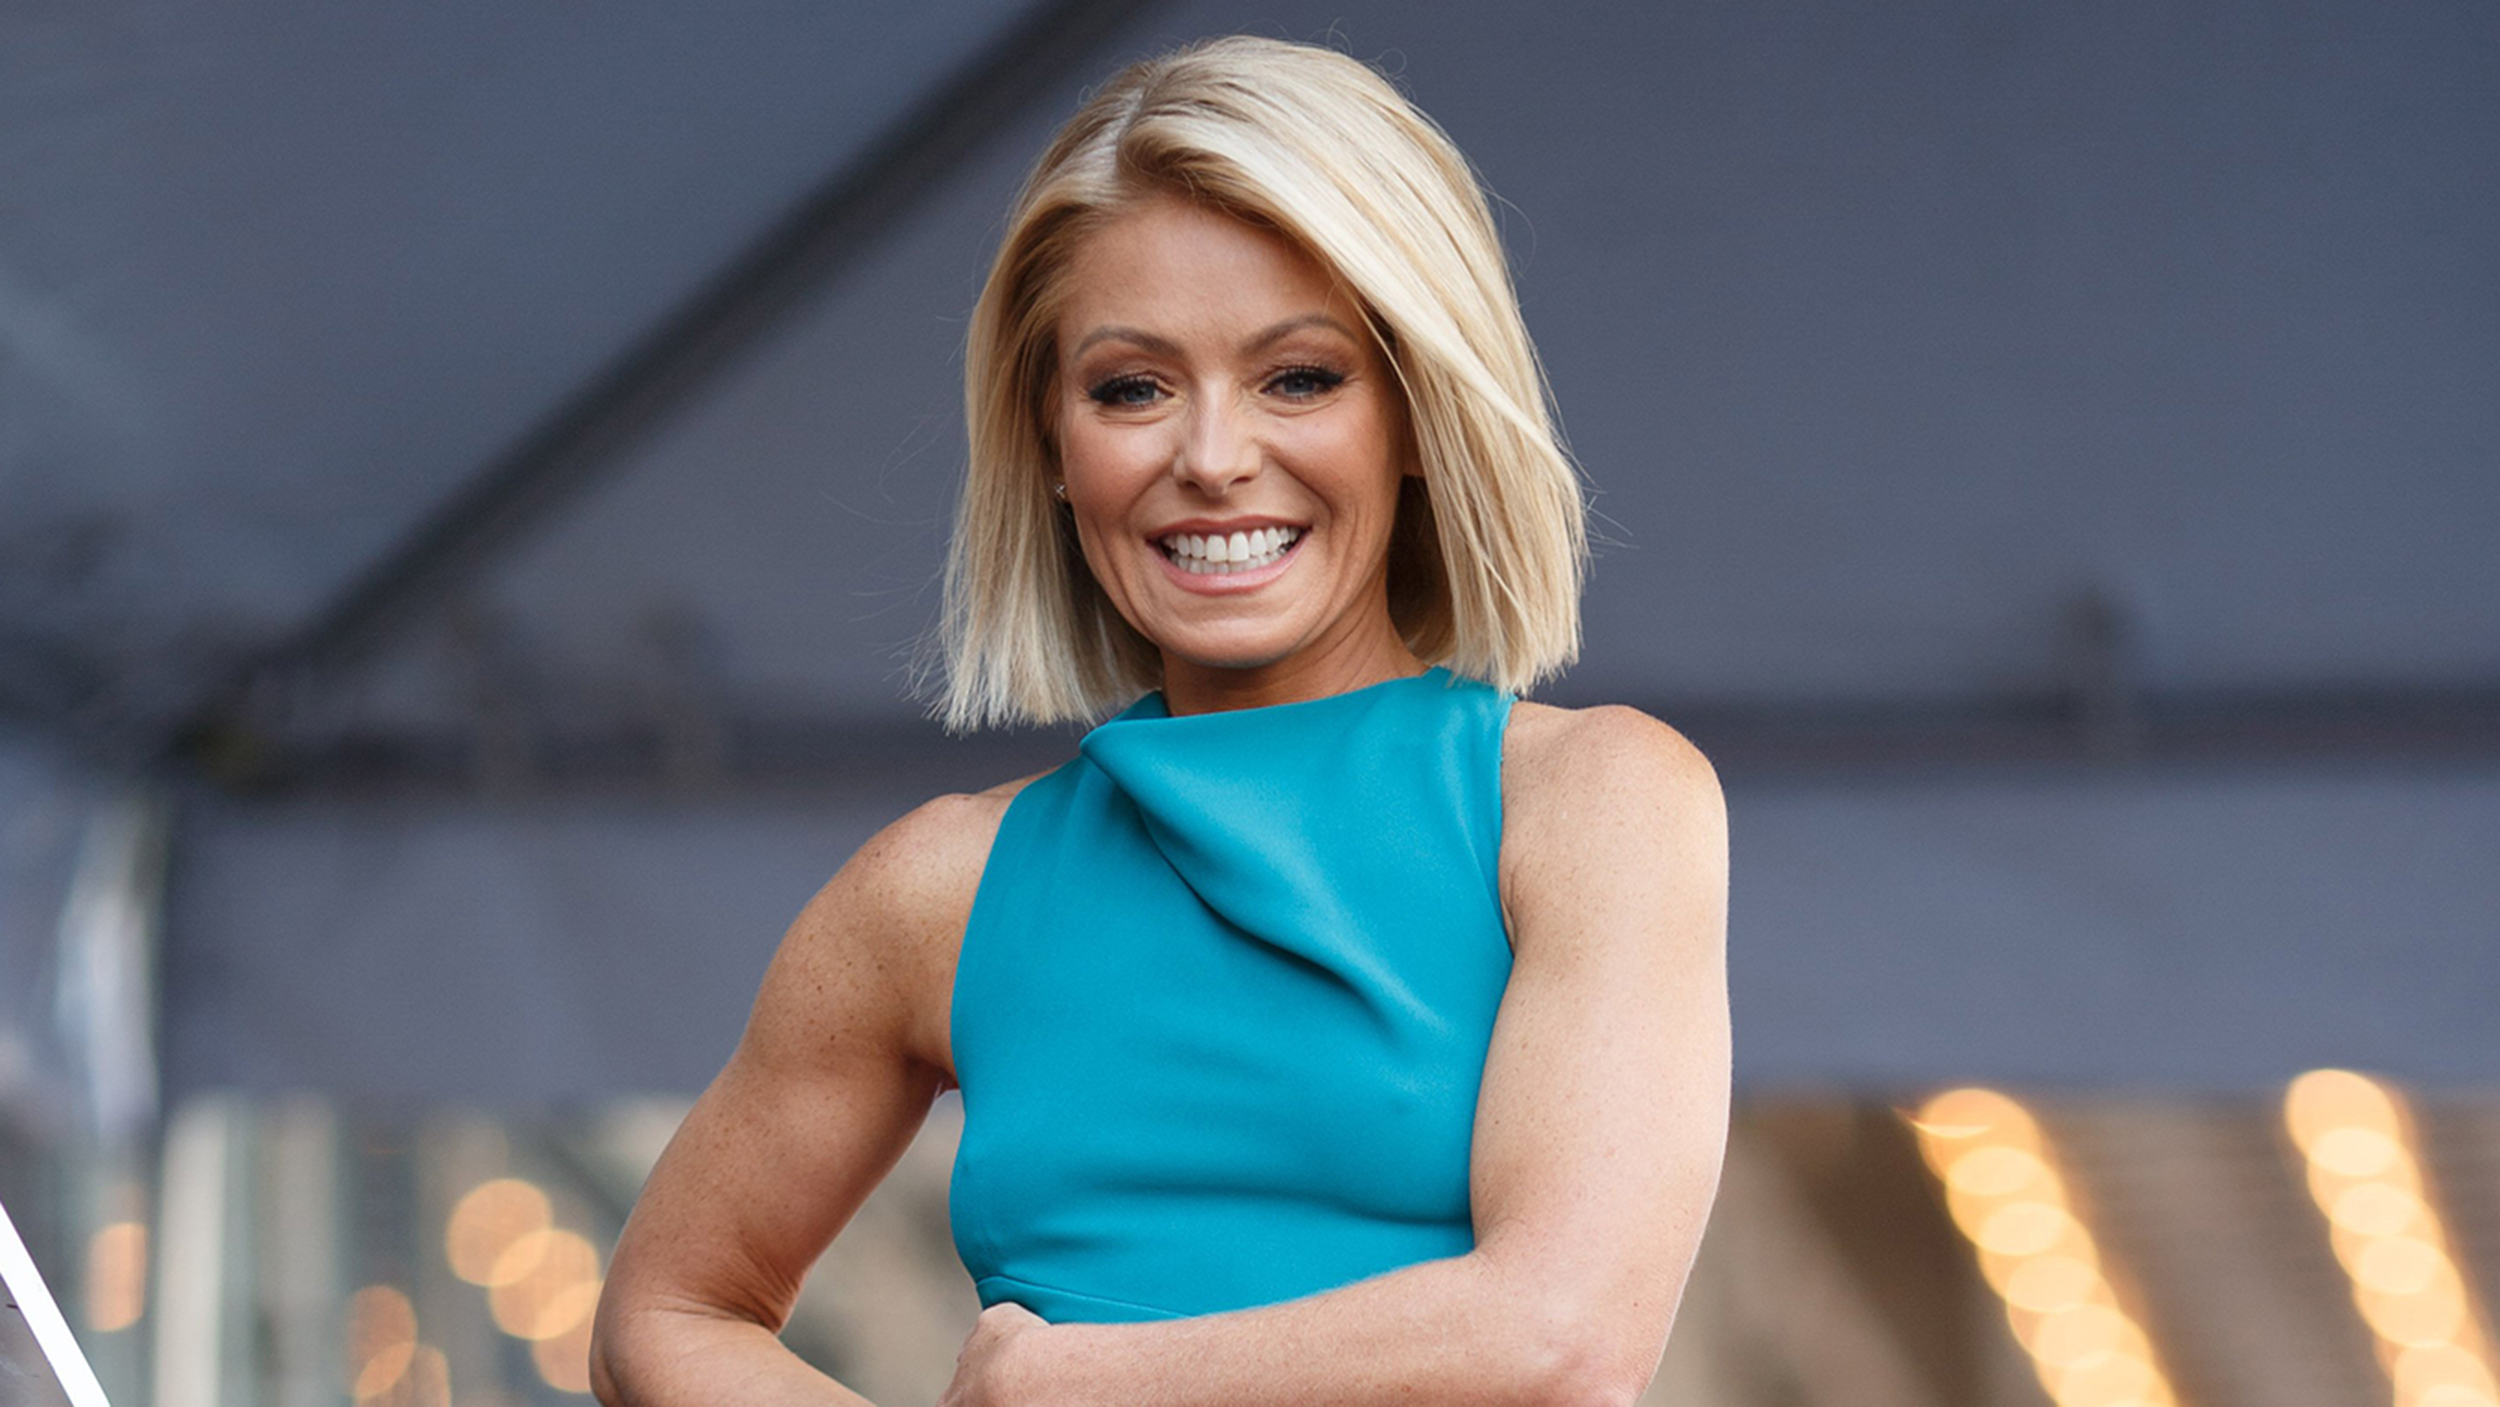 Kelly Ripa earned a 20 million dollar salary, leaving the net worth at 75 million in 2017